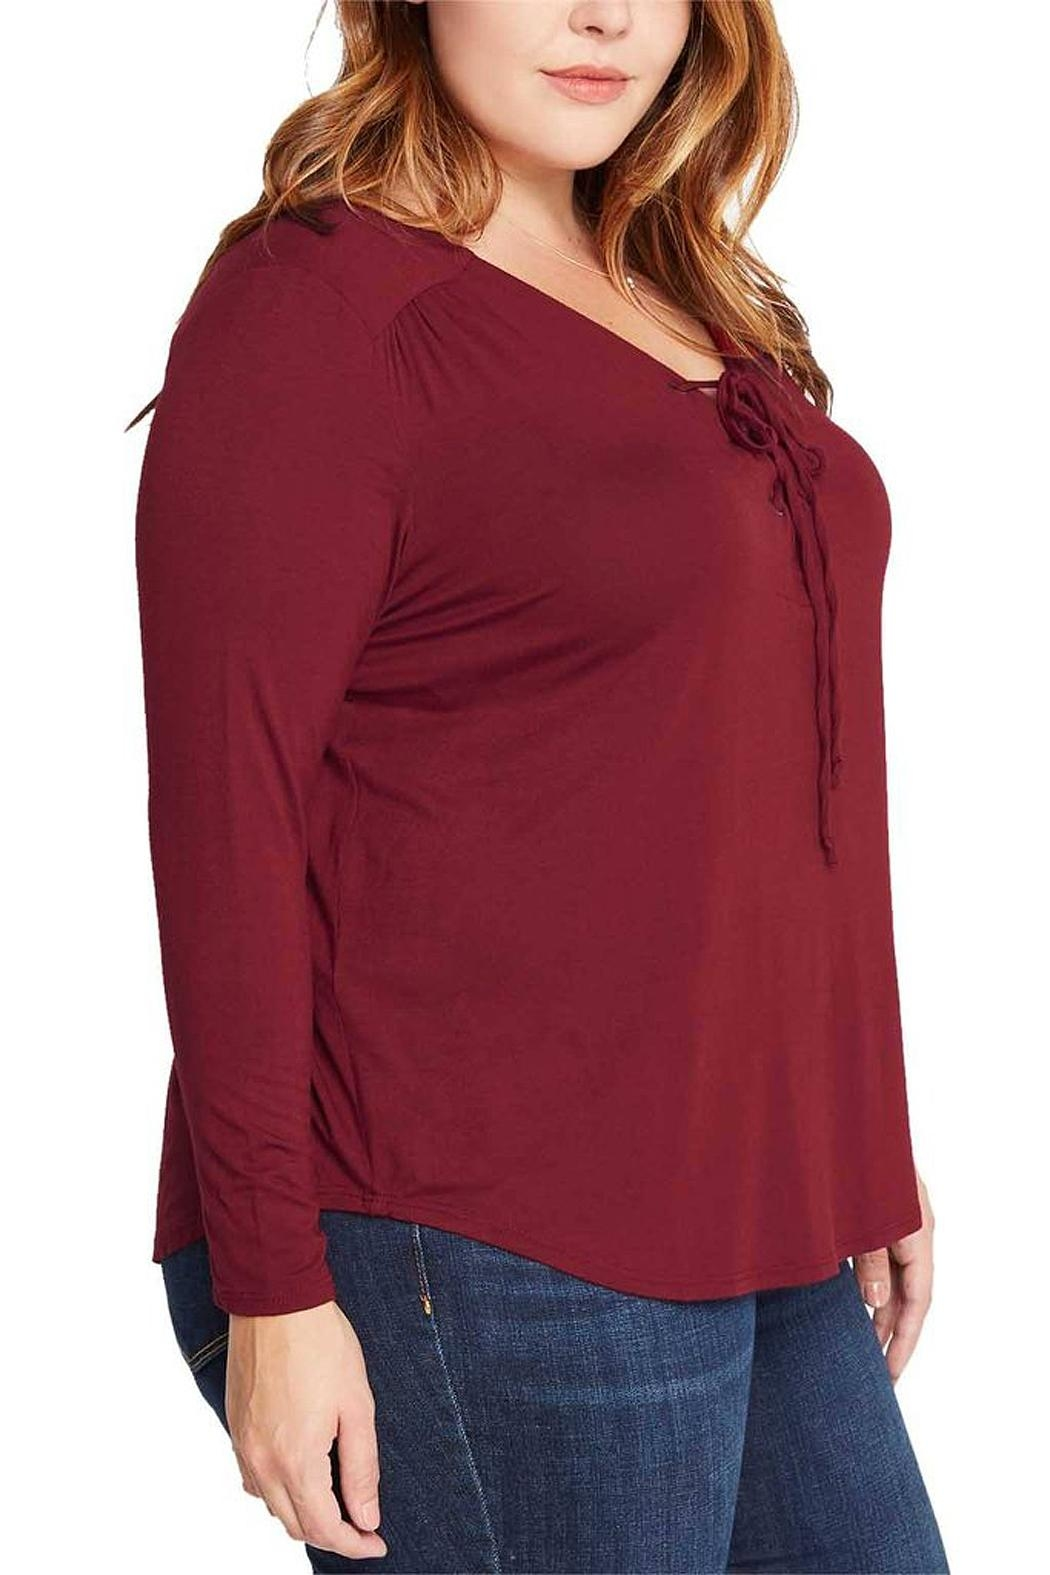 Mai Tai Burgundy Lace Up Top - Front Full Image